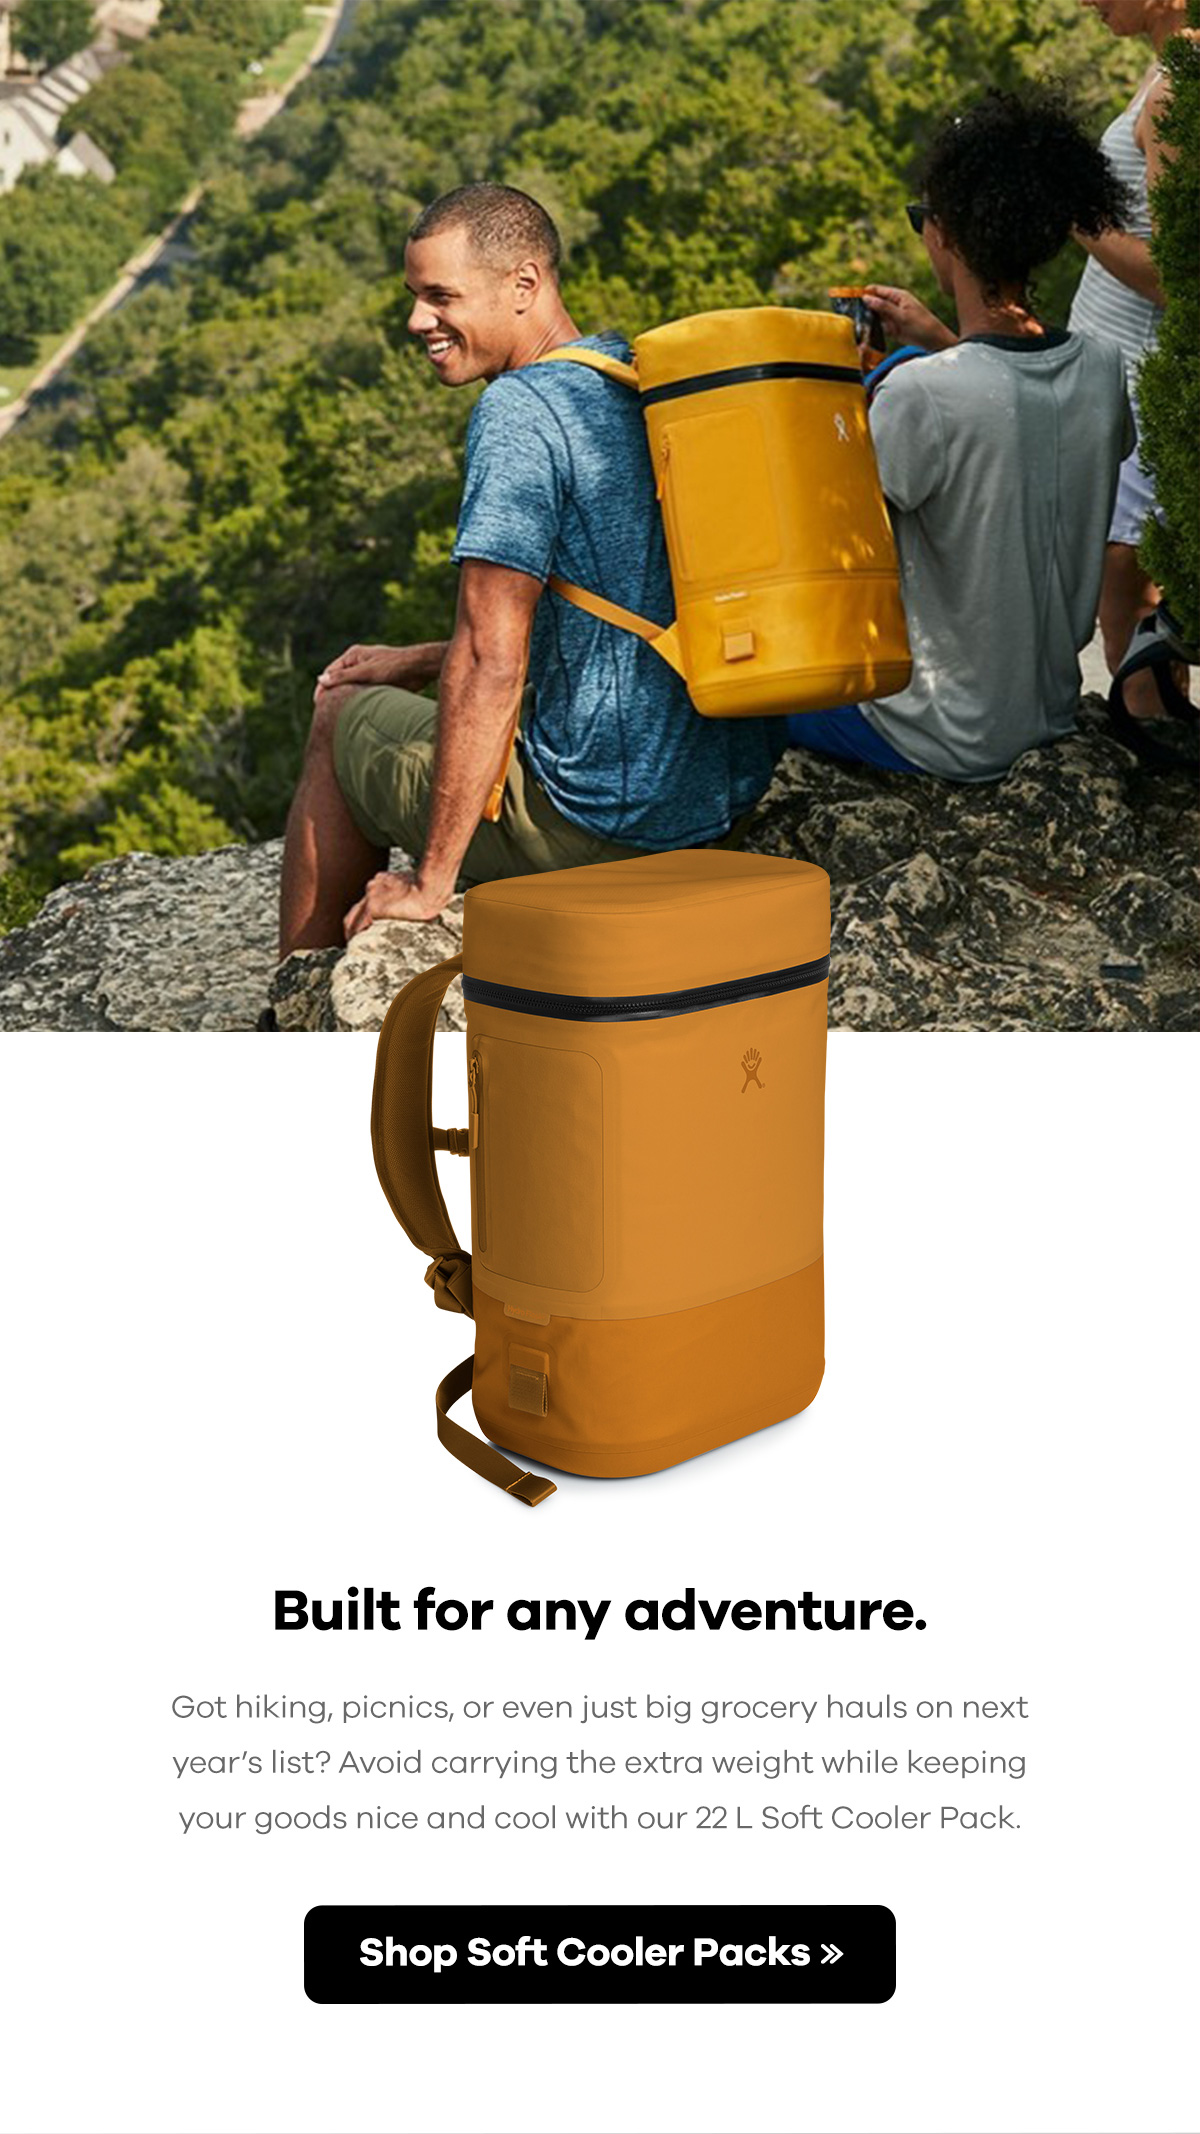 Built for any adventure. | Got hiking, picnics, or even just big grocery hauls on next year's list? Avoid carrying the extra weight while keeping your goods nice and cool with our 22 L Soft Cooler Pack. | Shop Soft Cooler Packs >>